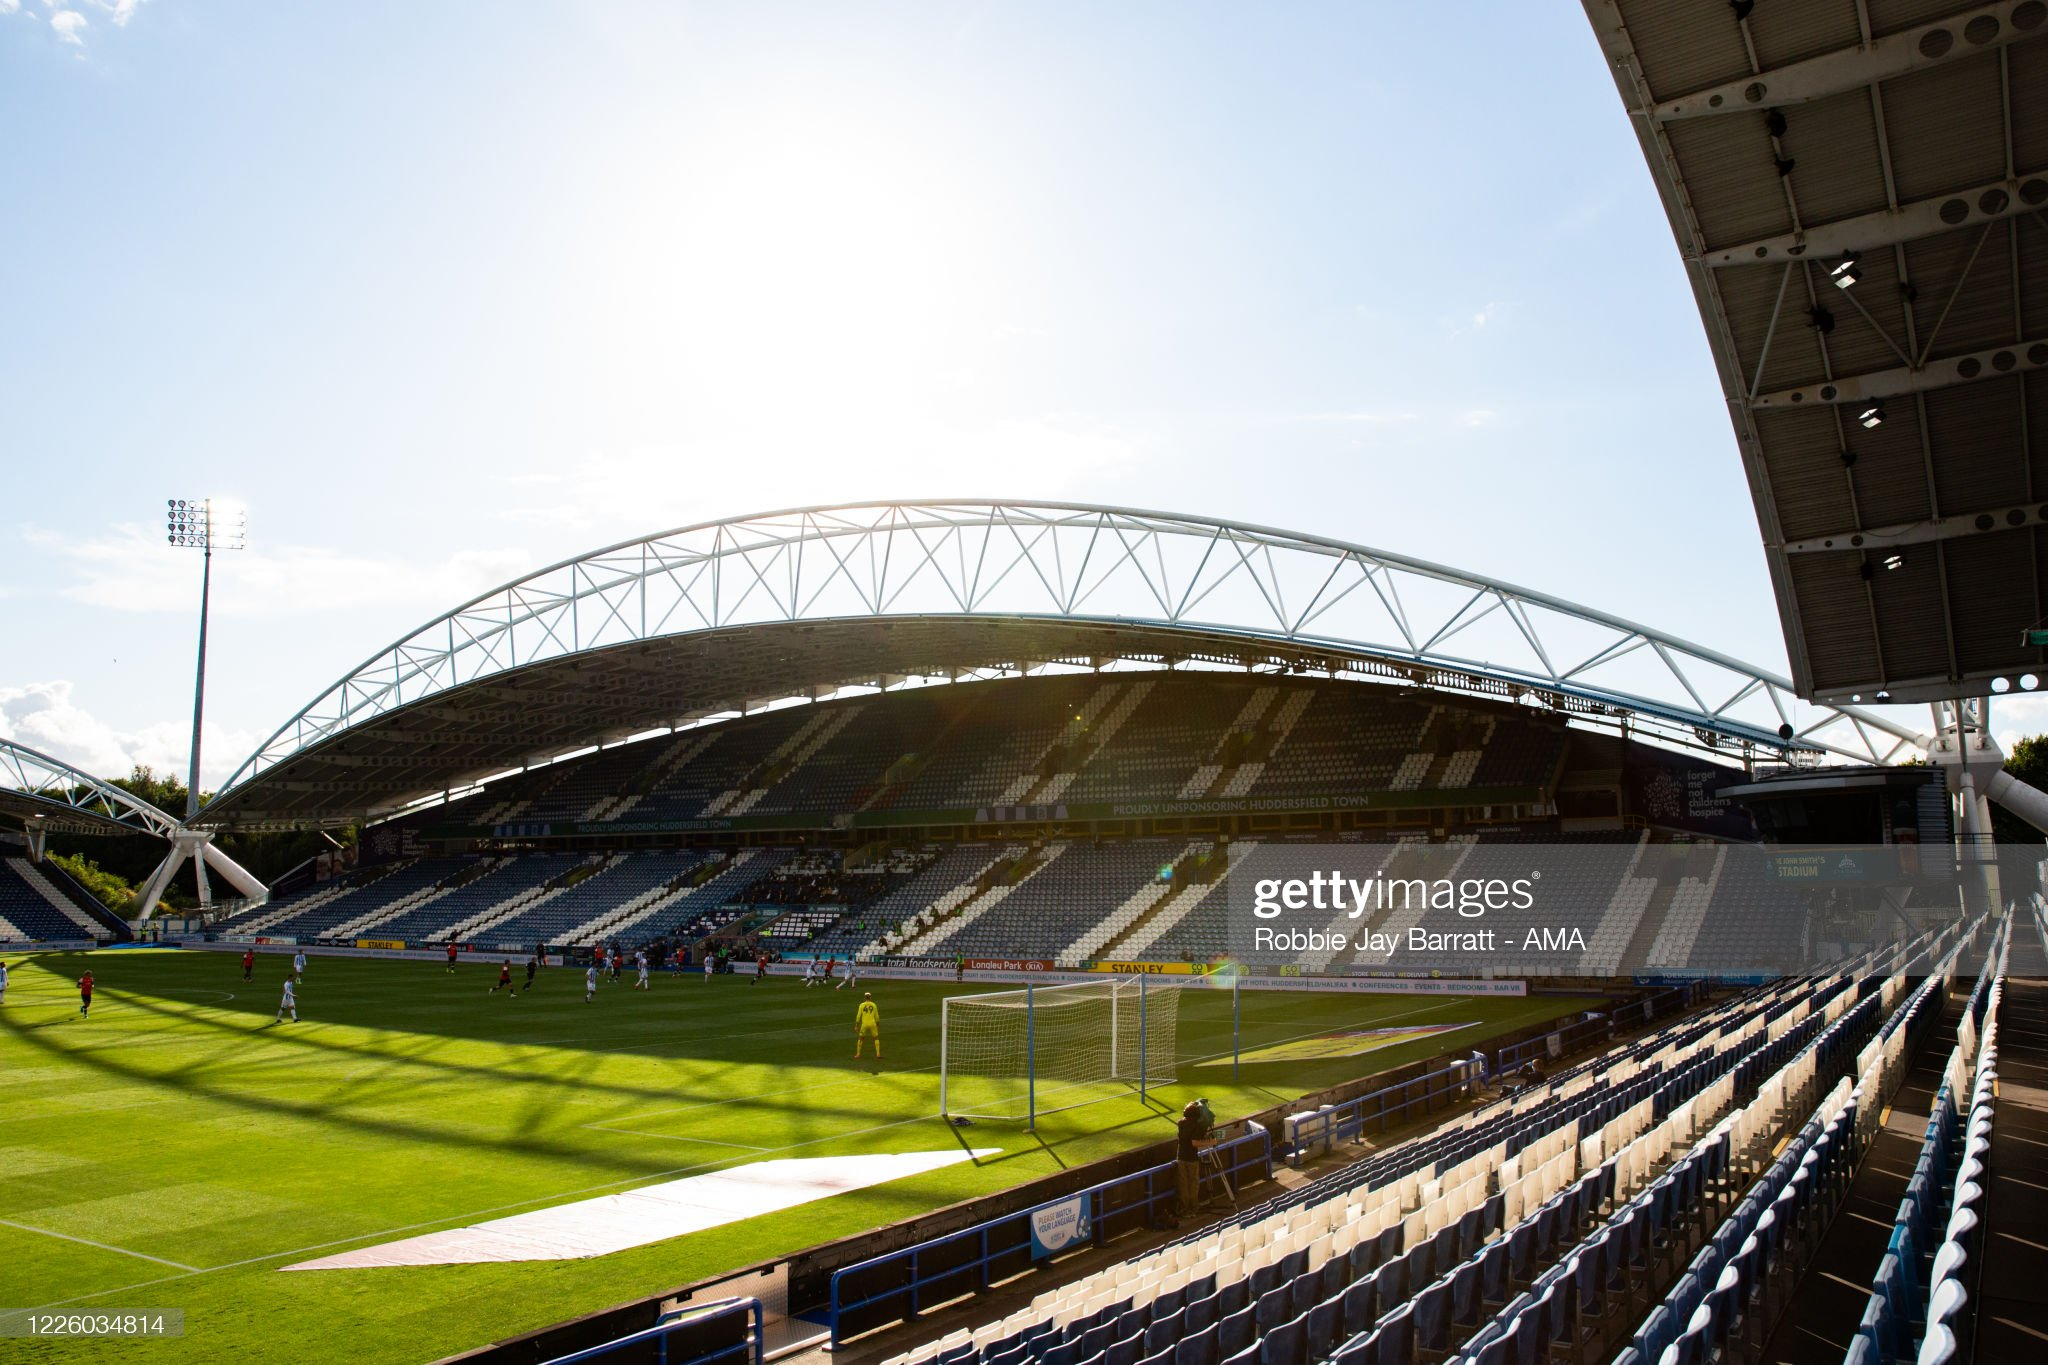 Huddersfield Town vs West Brom Preview, prediction and odds